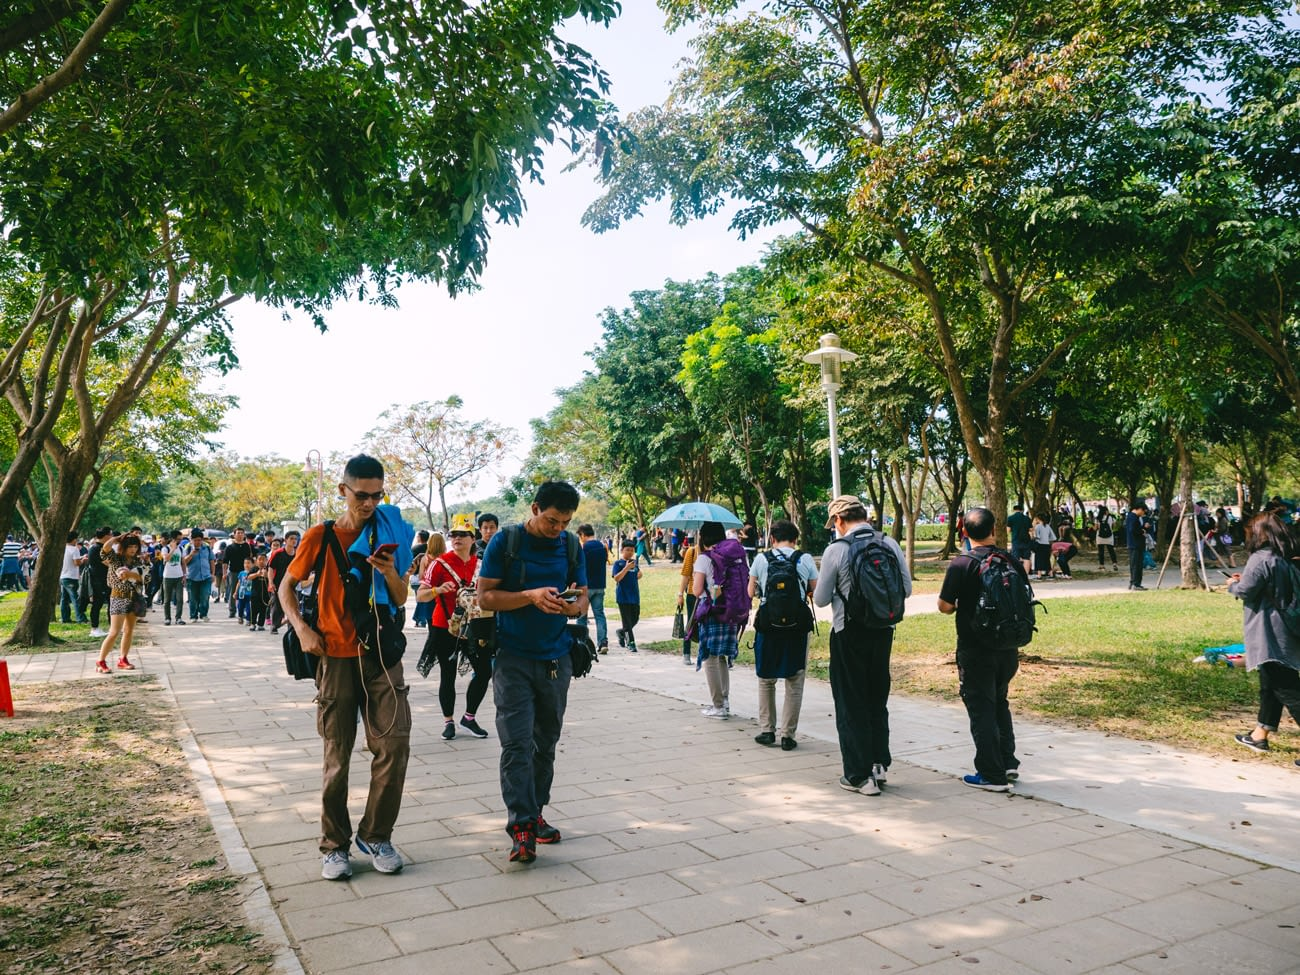 Tainan - Pokemon Go Safari Event - Players engrossed in catching